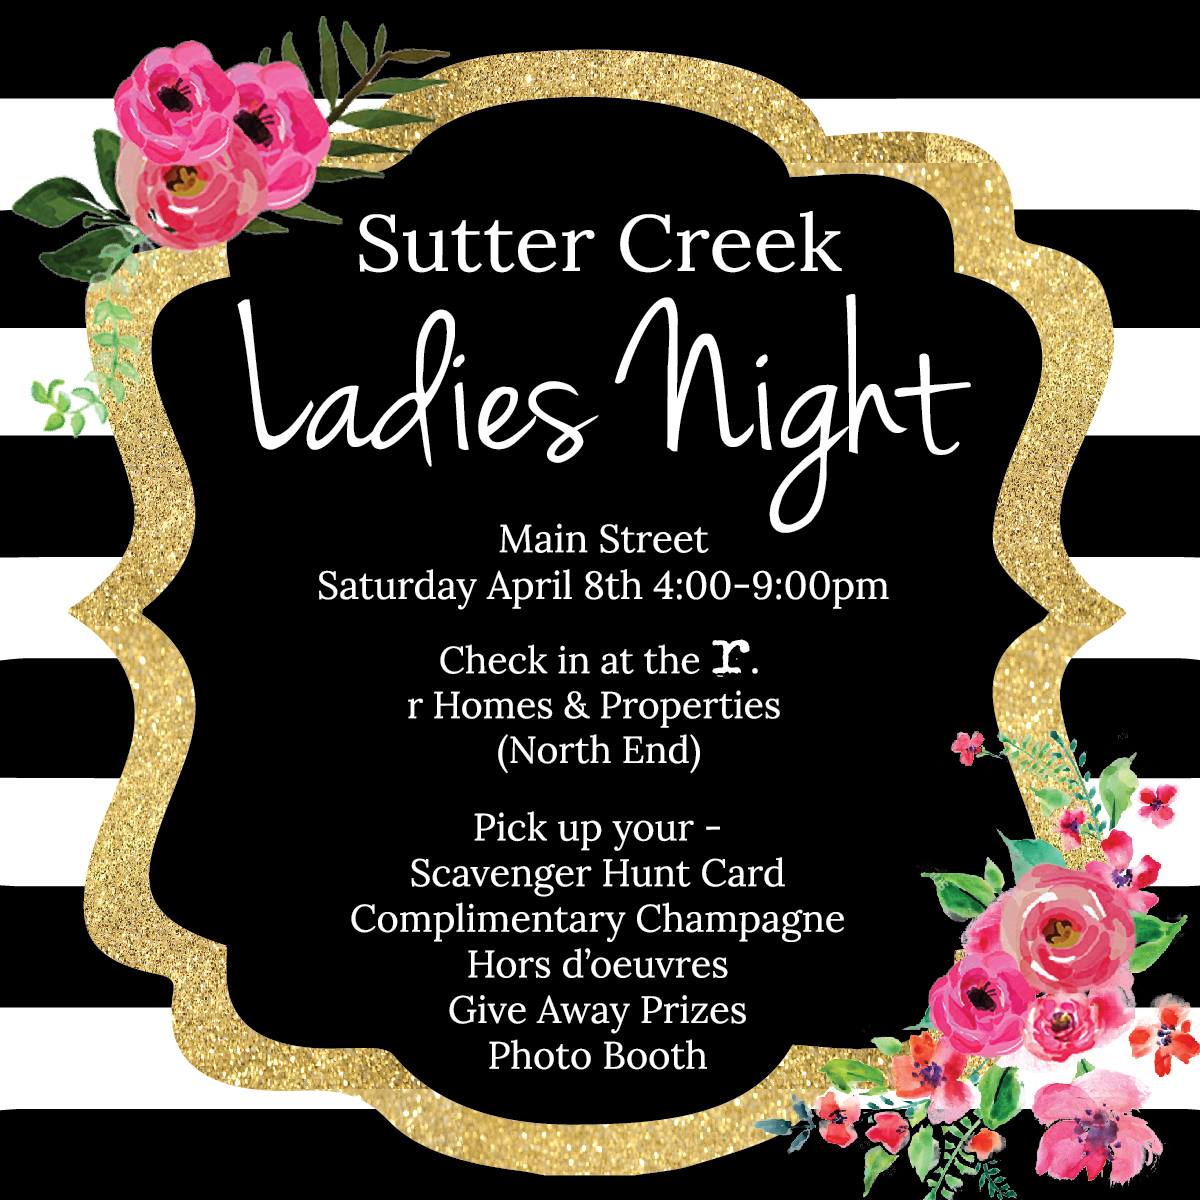 Sutter Creek Ladies Night - Sat Apr 8